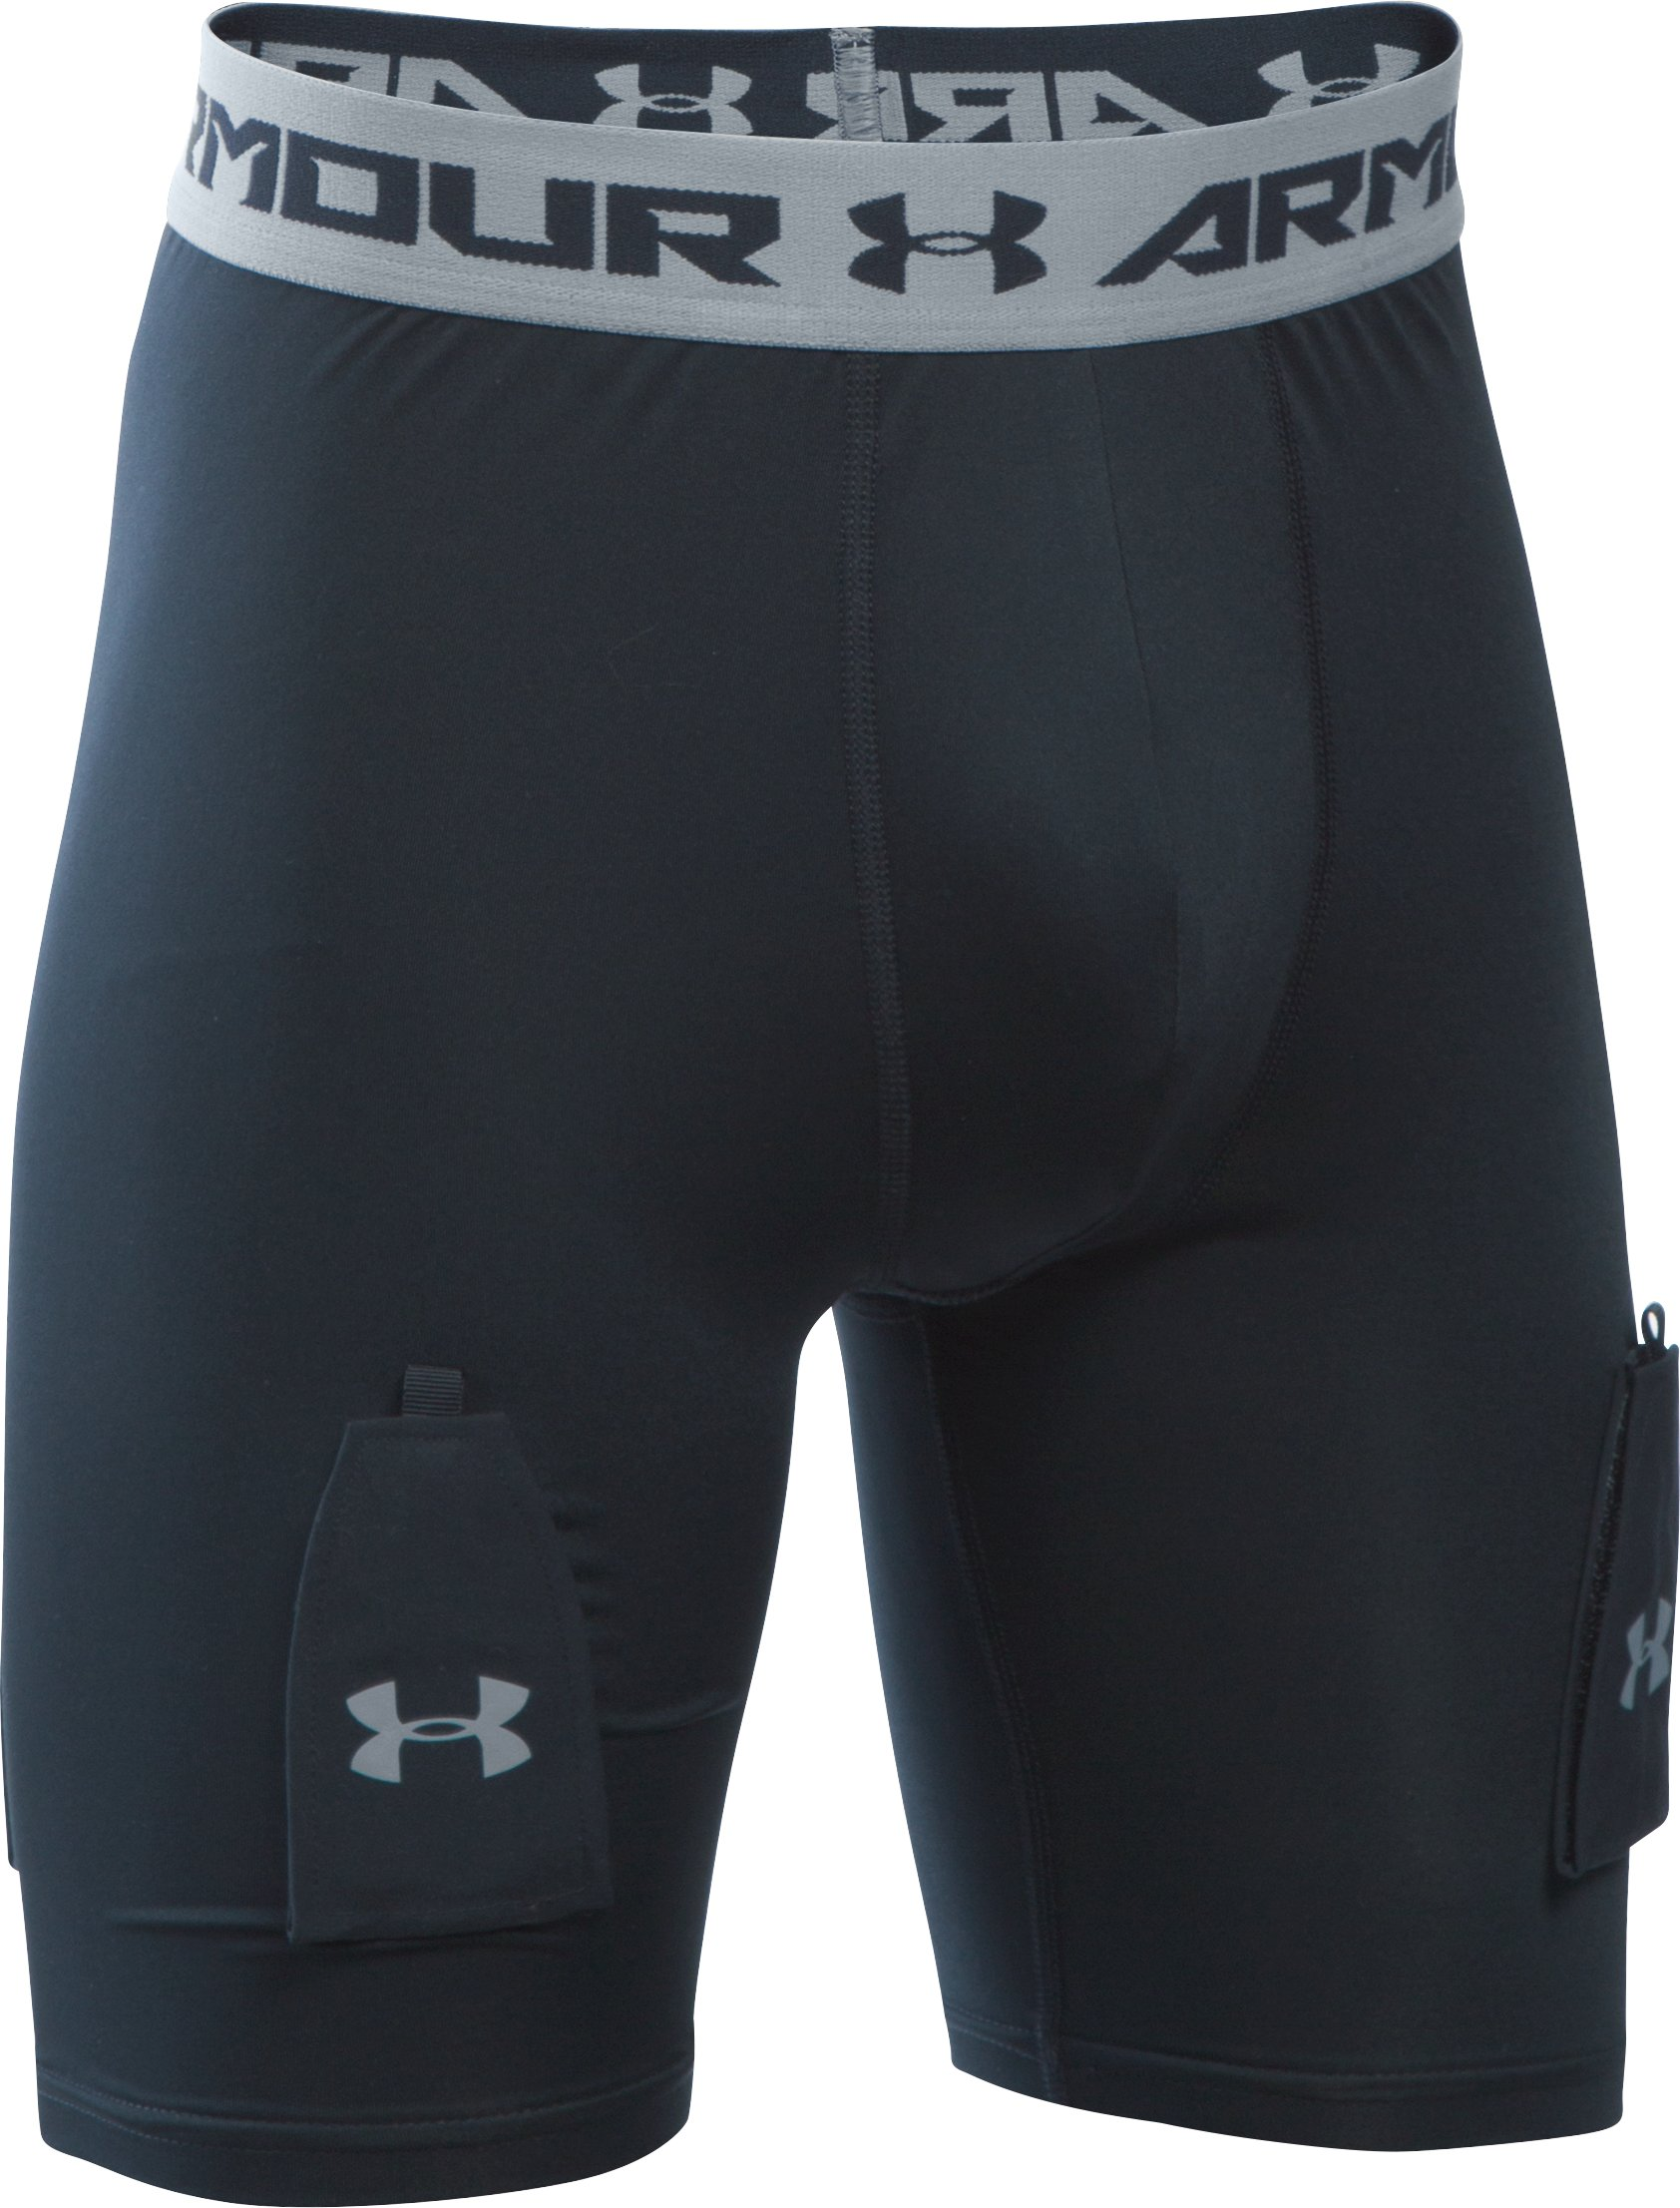 Boys' UA Purestrike Shorts w/ Cup, Black , undefined